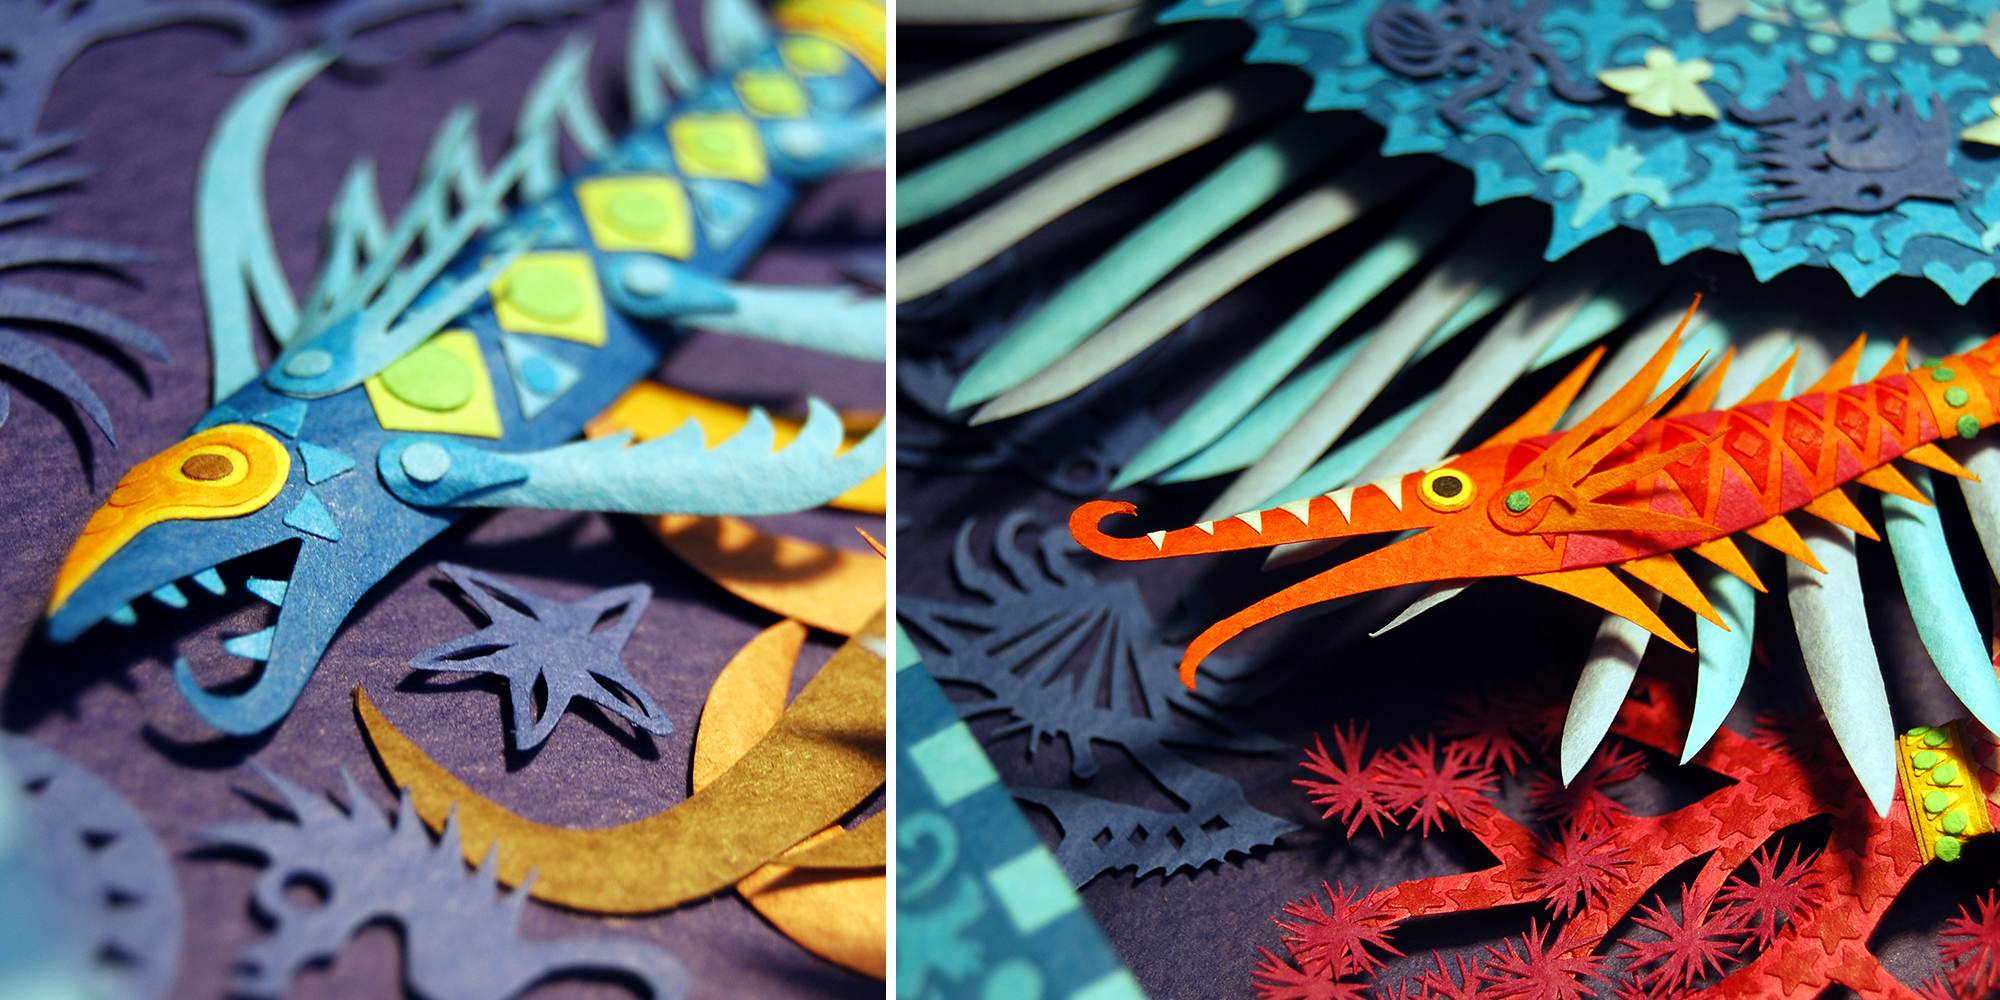 Marcelo Kato Creates Colorful Mediterranean Sea Inspired Cut Paper Illustrations - Sea Time